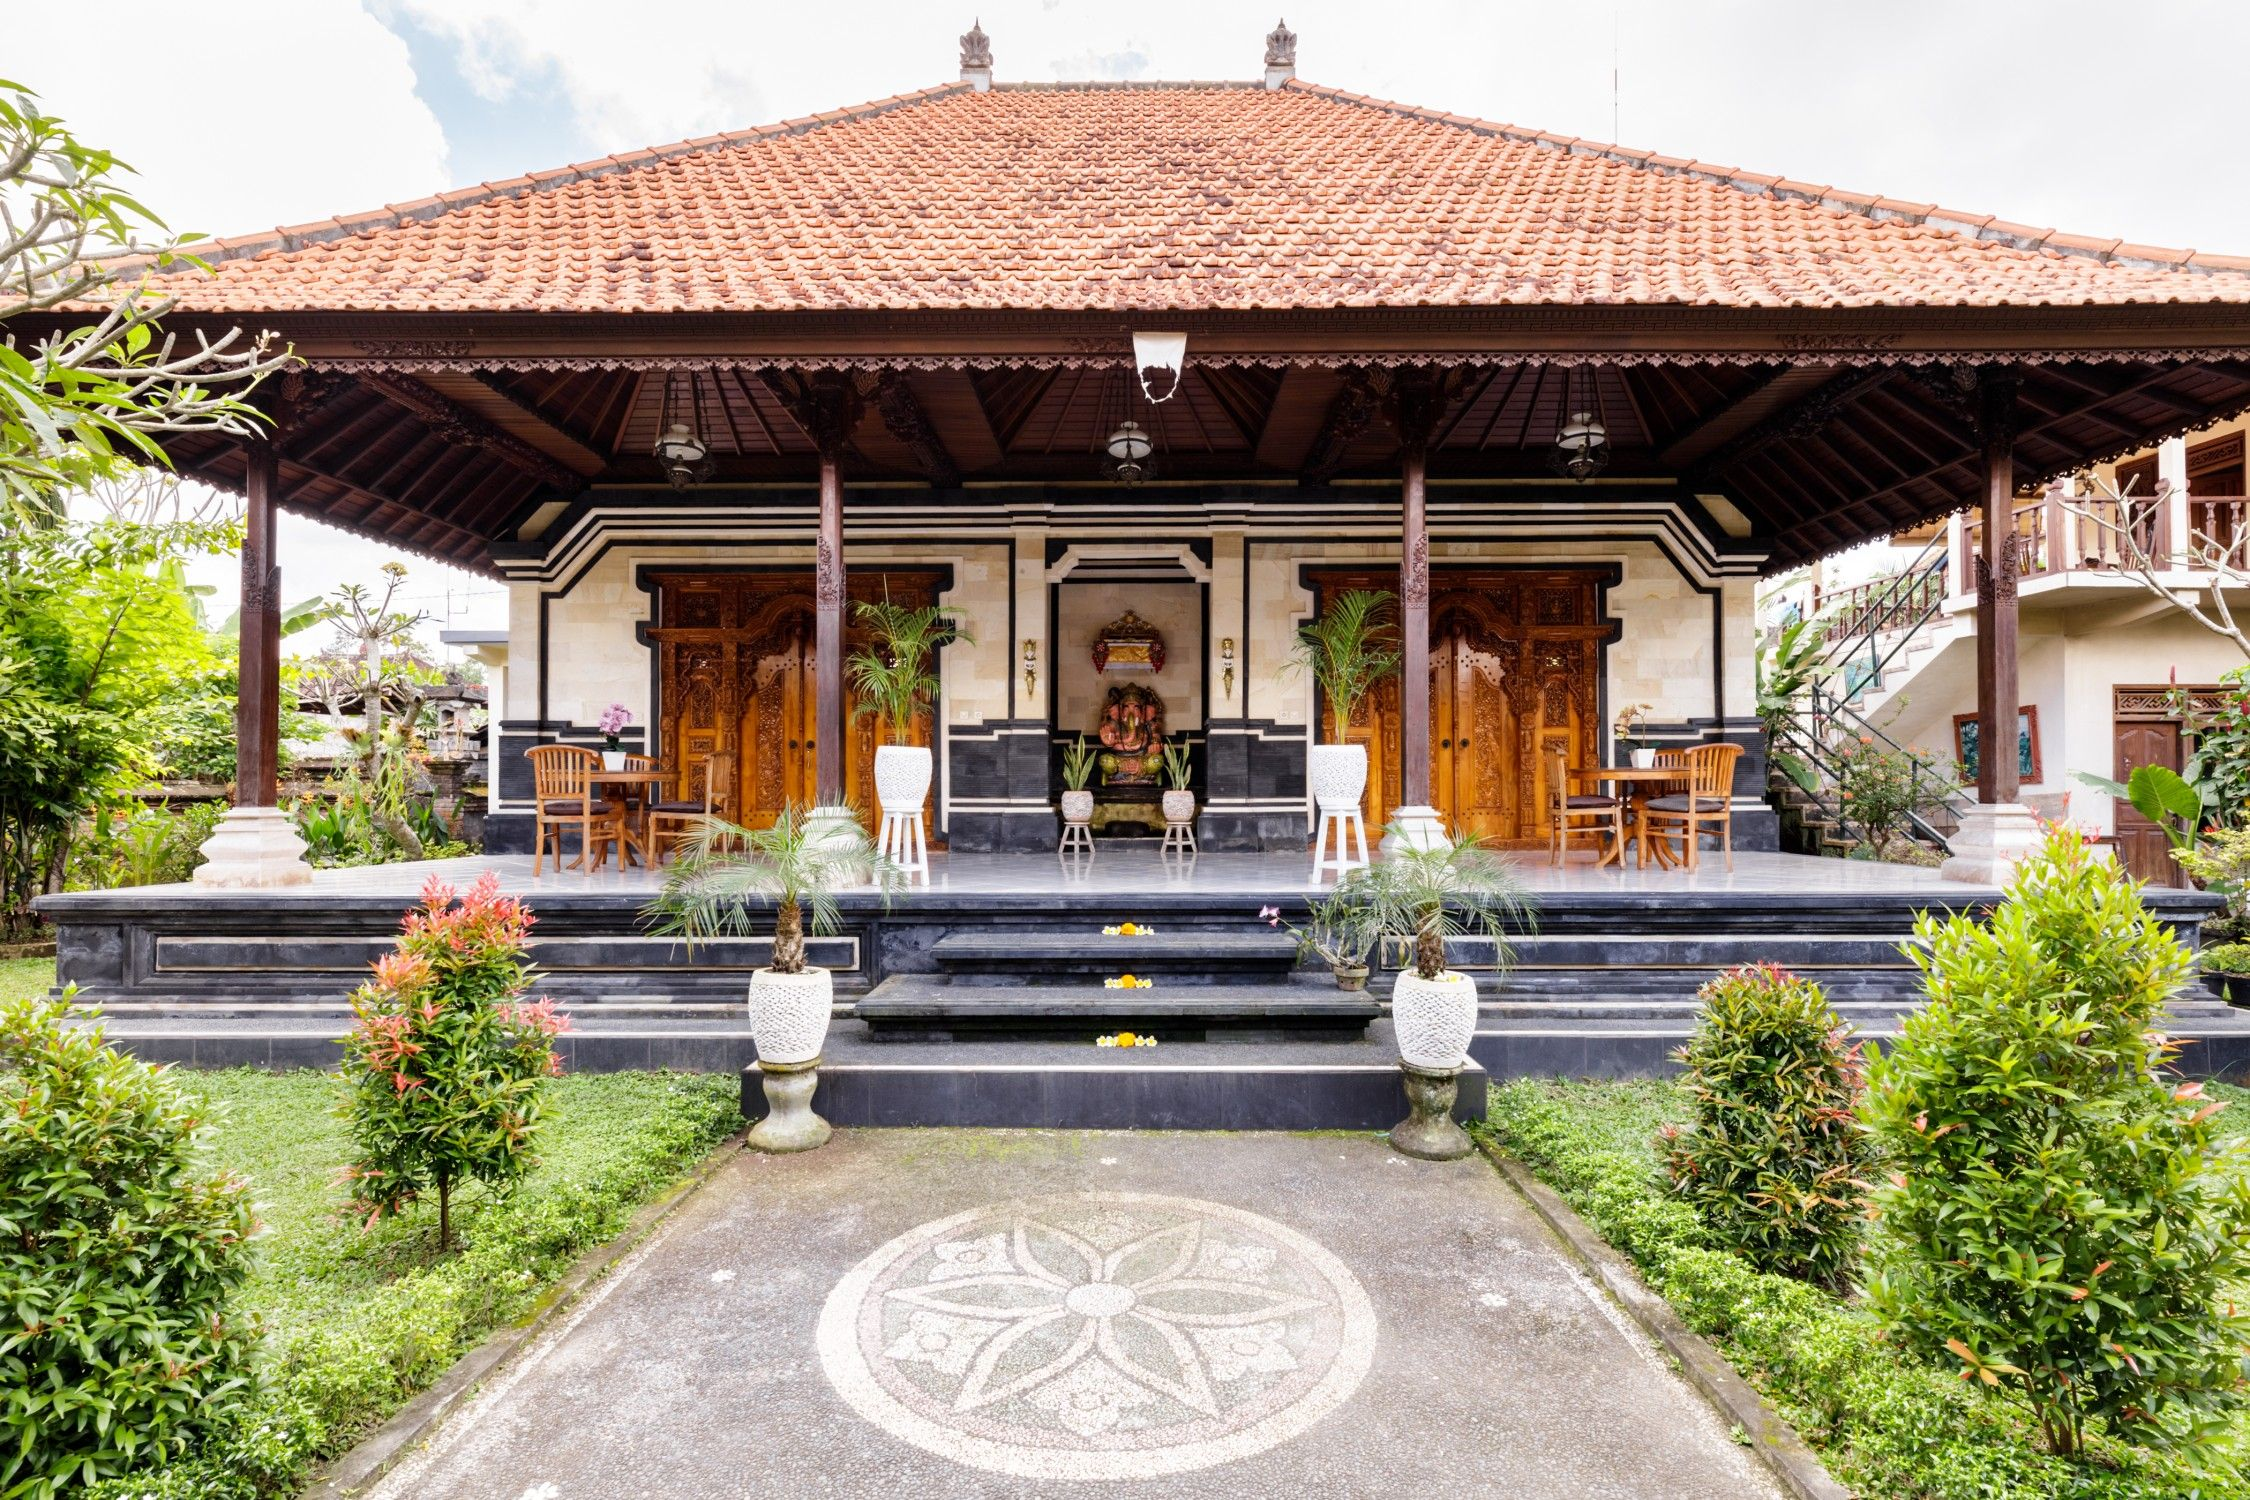 Experience Balinese Living In A Traditional House Houses For Rent In Ubud Bali Indonesia Balinese House Bali House Balinese Home